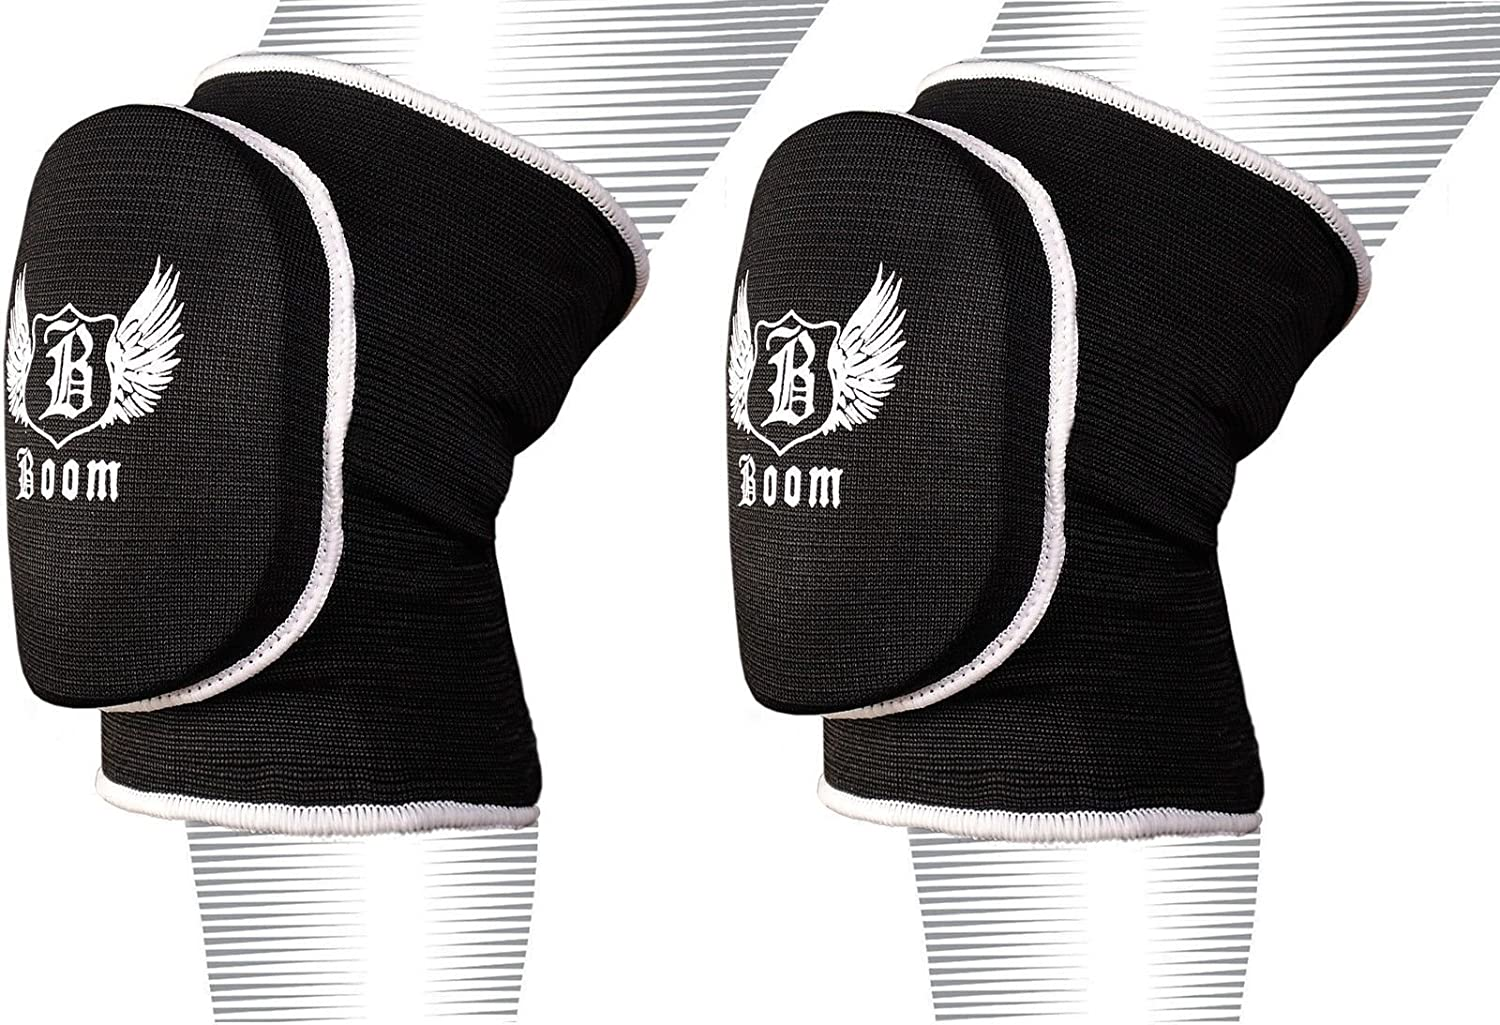 L//XL, Black BOOM Prime Padded Soft Garden Knee Support Pads Protector Elasticated Guard MMA